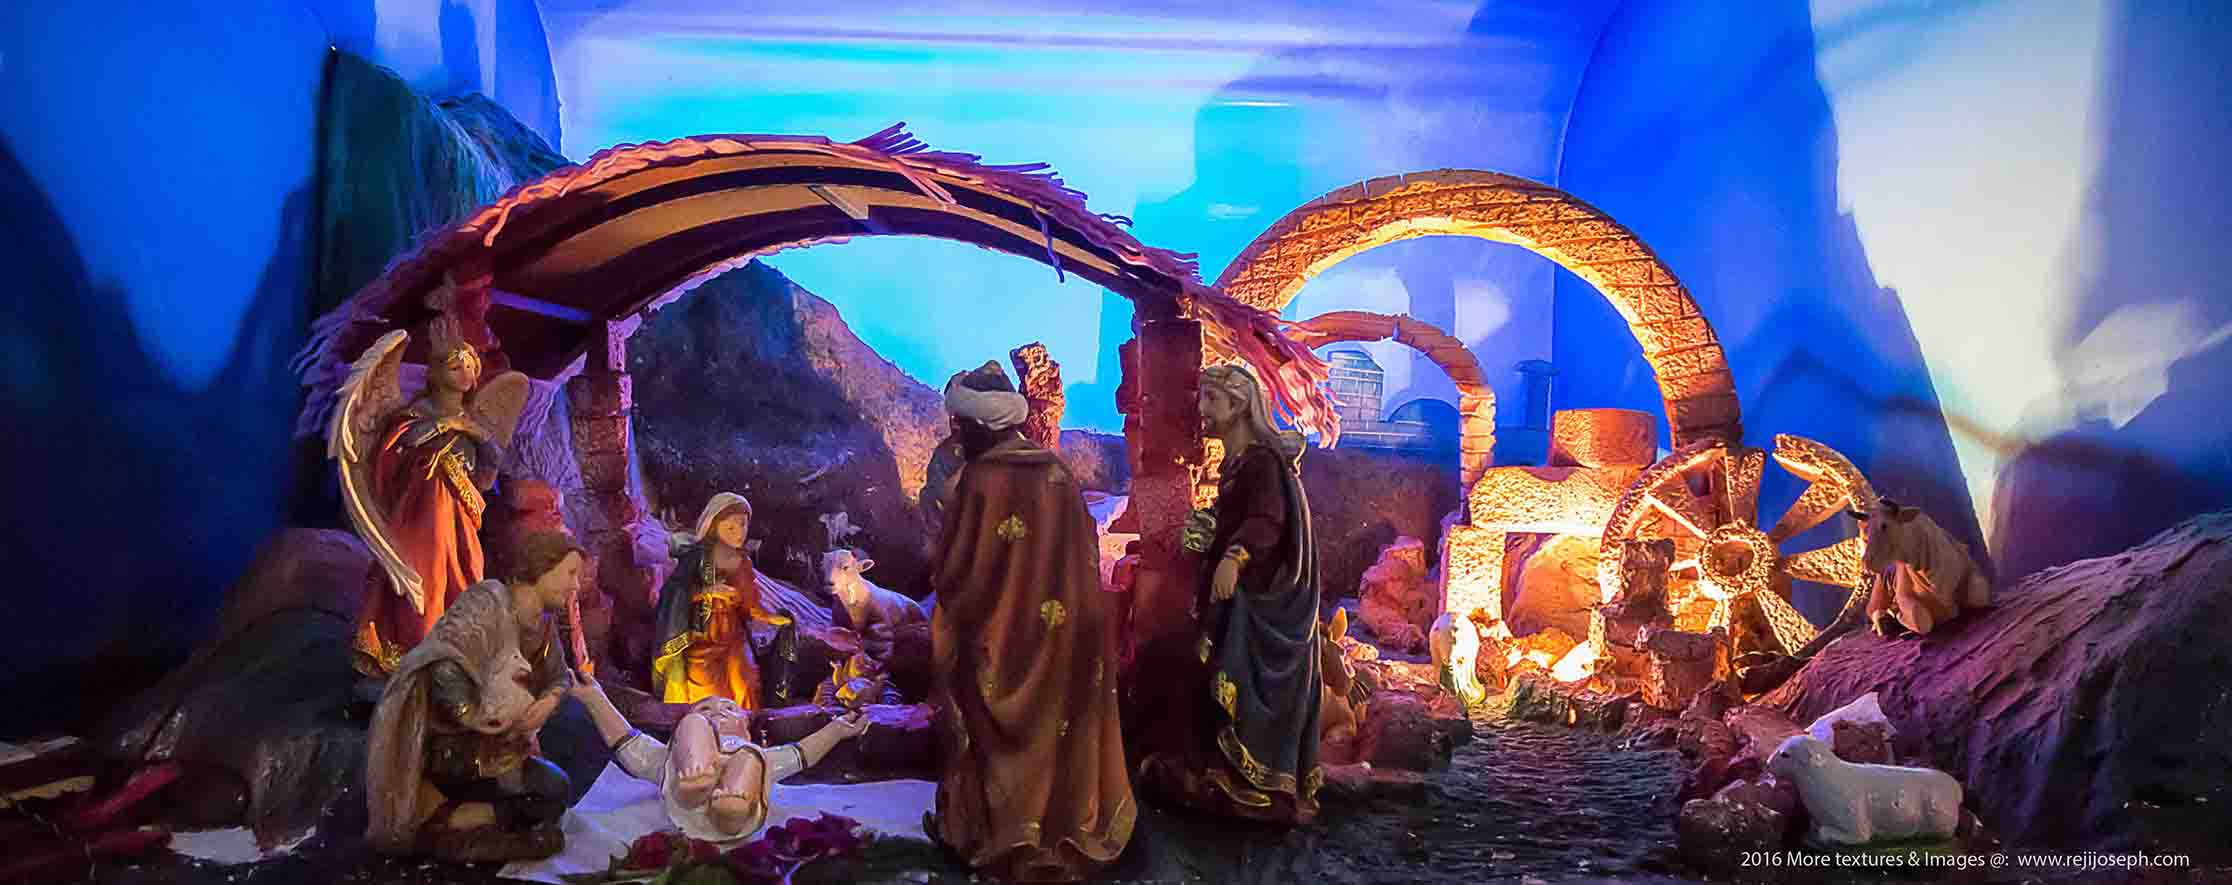 Christmas crib Pulkoodu St. George Forane Church Edappally 00006